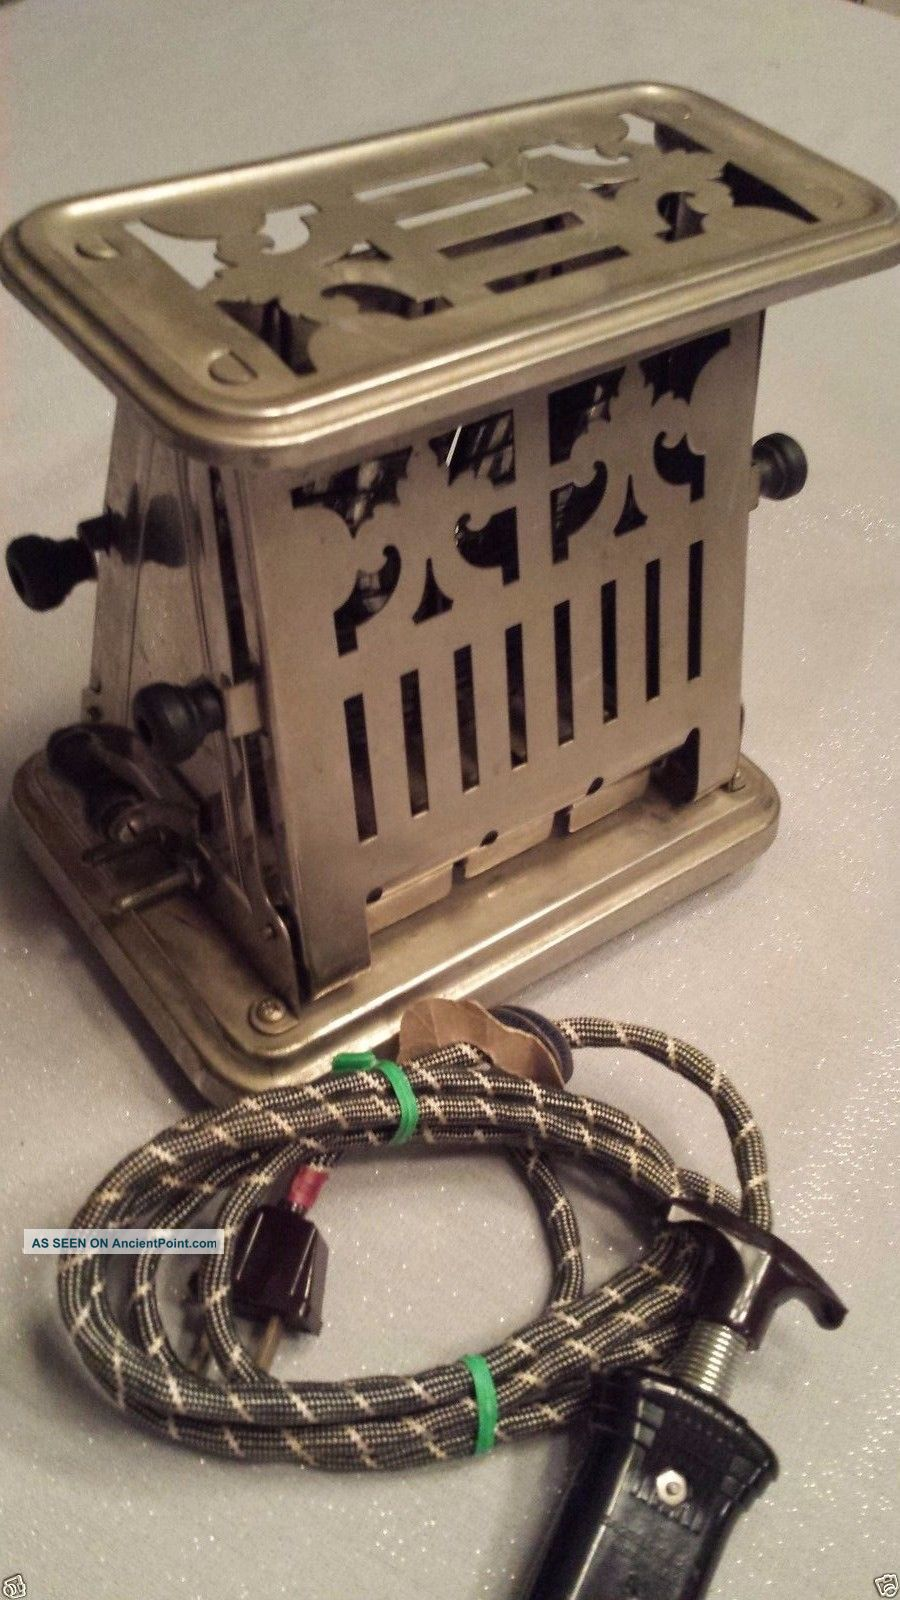 Universal Toaster E9412a Landers Frary Clark Vintage Antique,  With Cord, Toasters photo